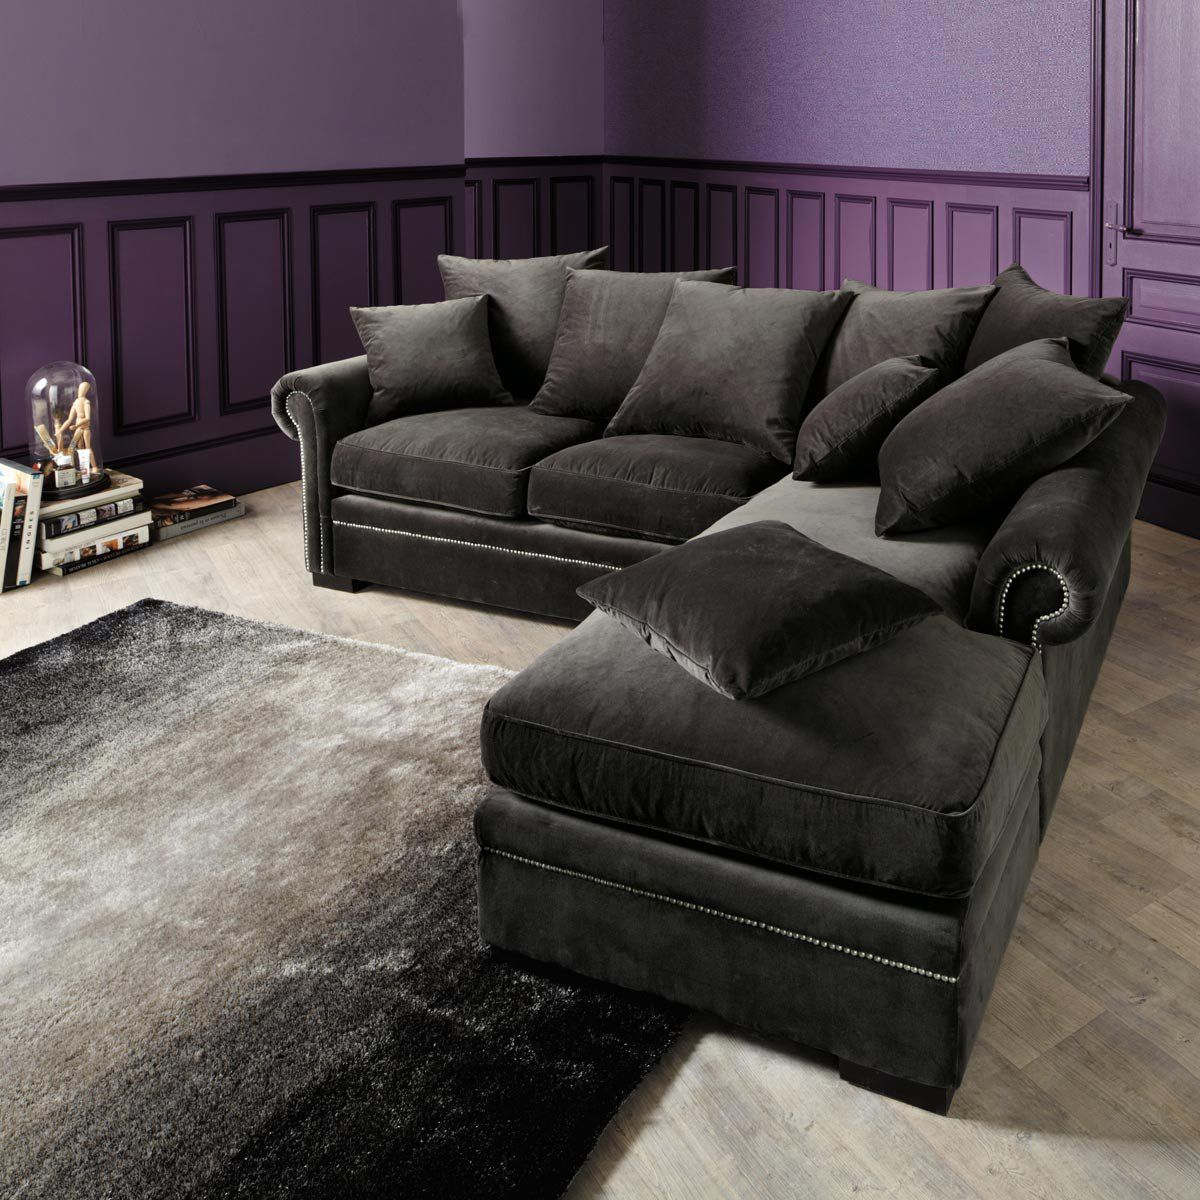 Sectional Corner Sofa In Grey Velvet